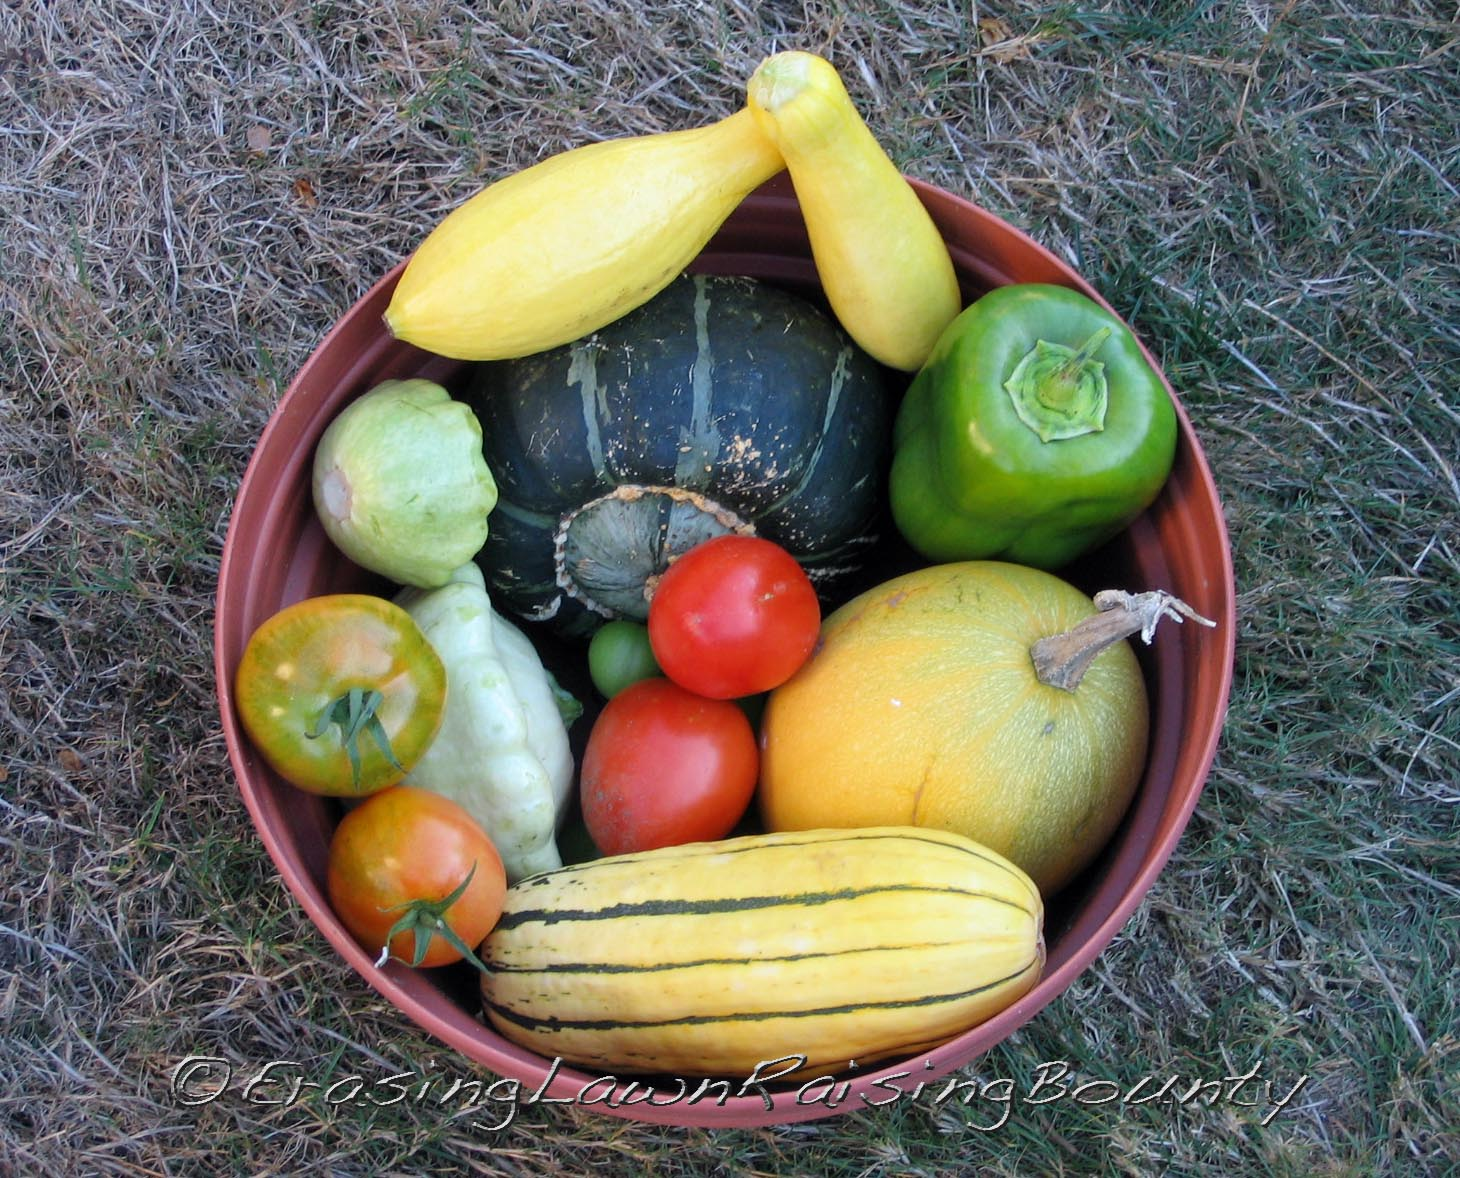 """Final samplings of squash, tomatoes, and peppers.  Clockwise from yellow summer squash resting on top of darker buttercup squash: """"yellow"""" pepper, spaghetti squash, delicata squash, patty-pan squash, with ripening tomatoes nestled among squash."""